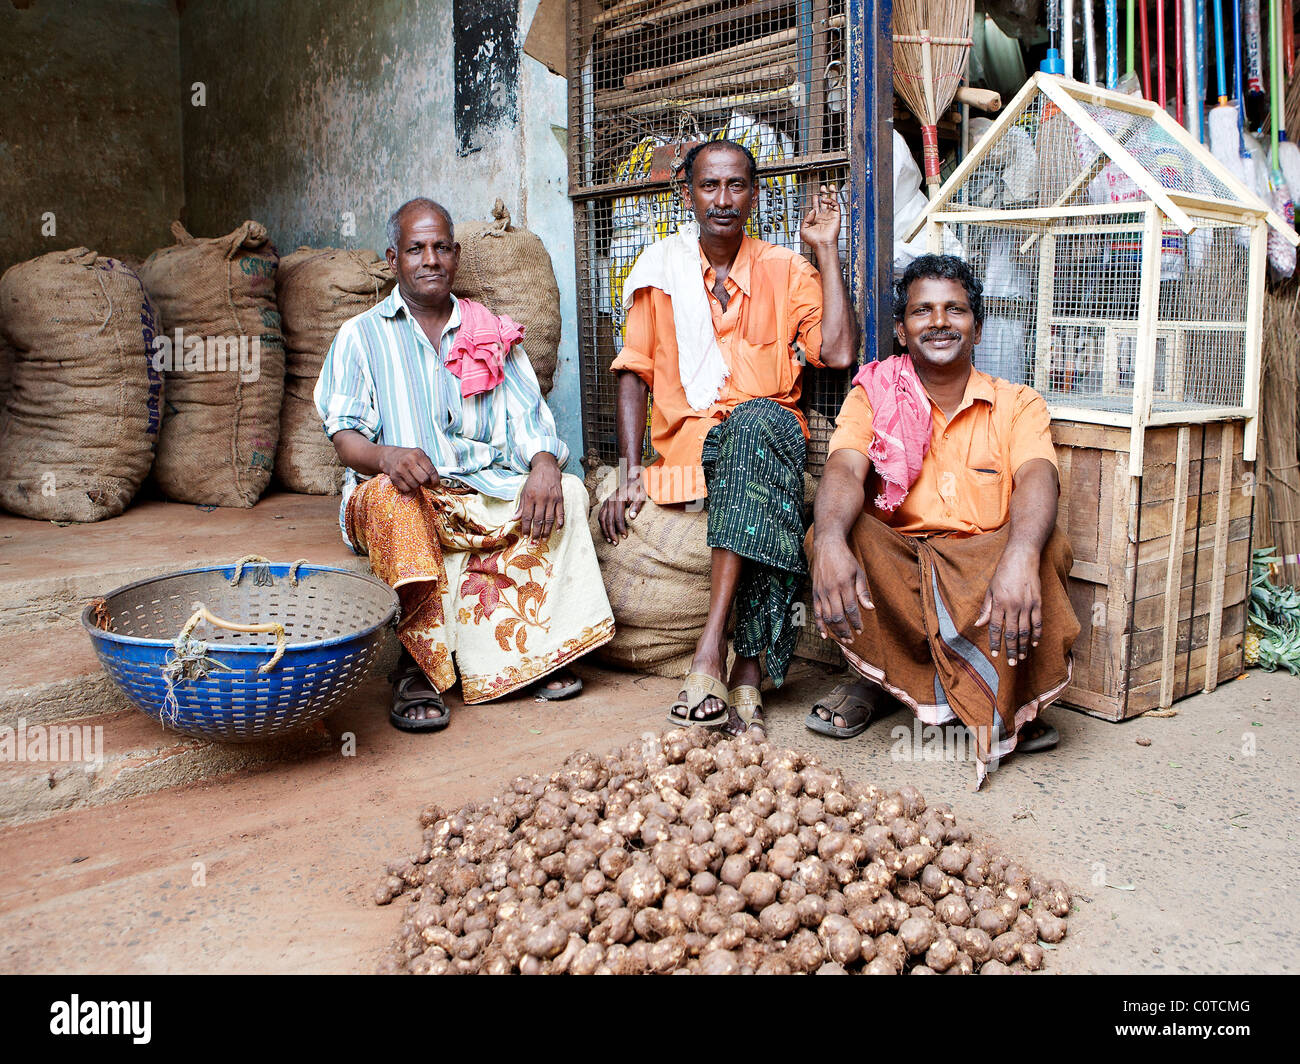 Fort Cochin market, Kerala, India; artichoke sellers - Stock Image